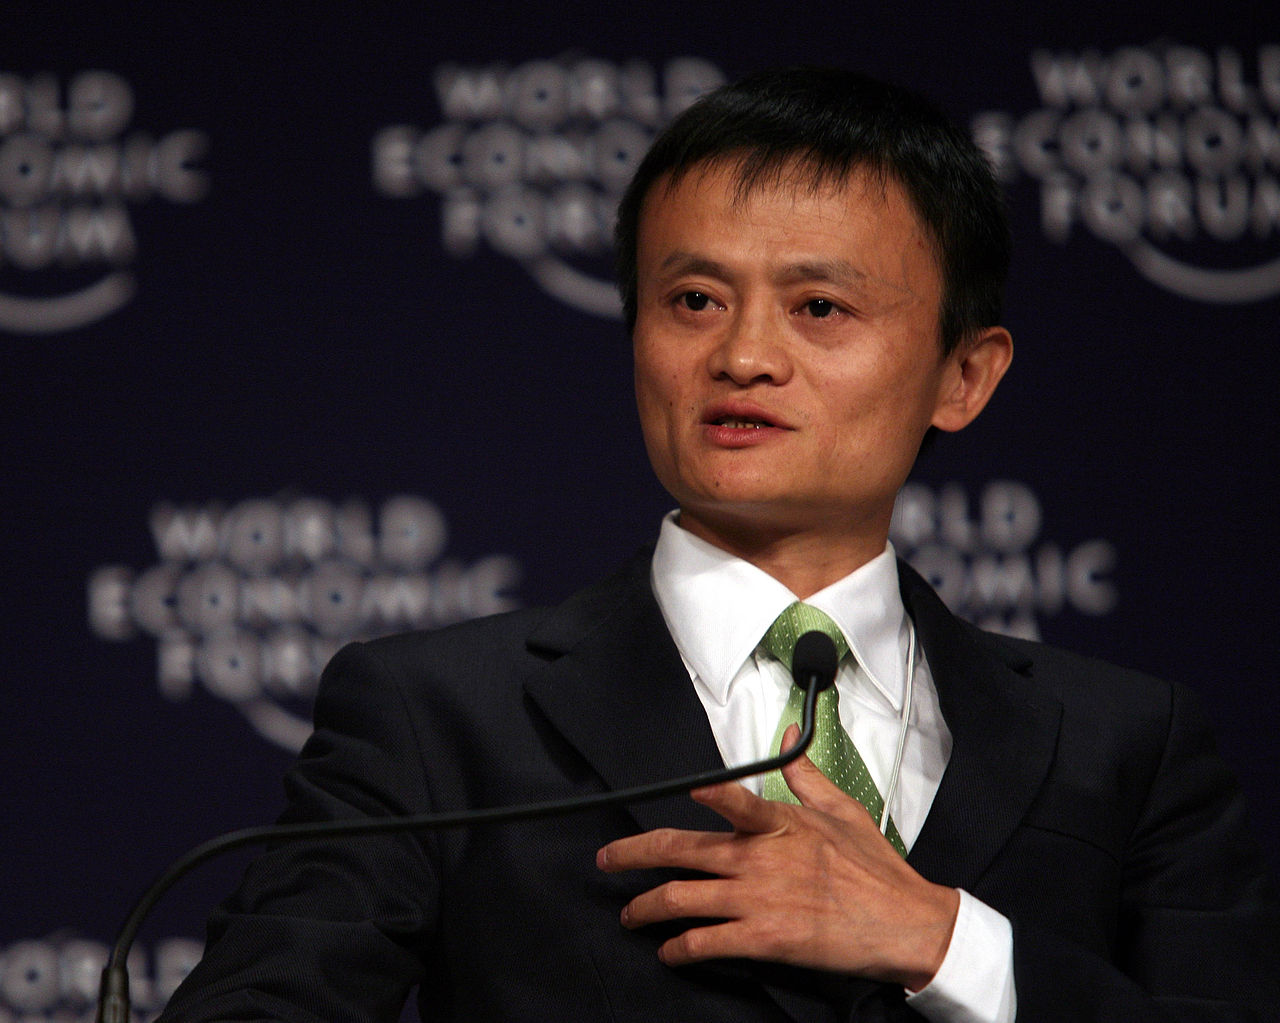 1280px-flickr_-_world_economic_forum_-_jack_ma_yun_-_annual_meeting_of_the_new_champions_tianjin_2008_1